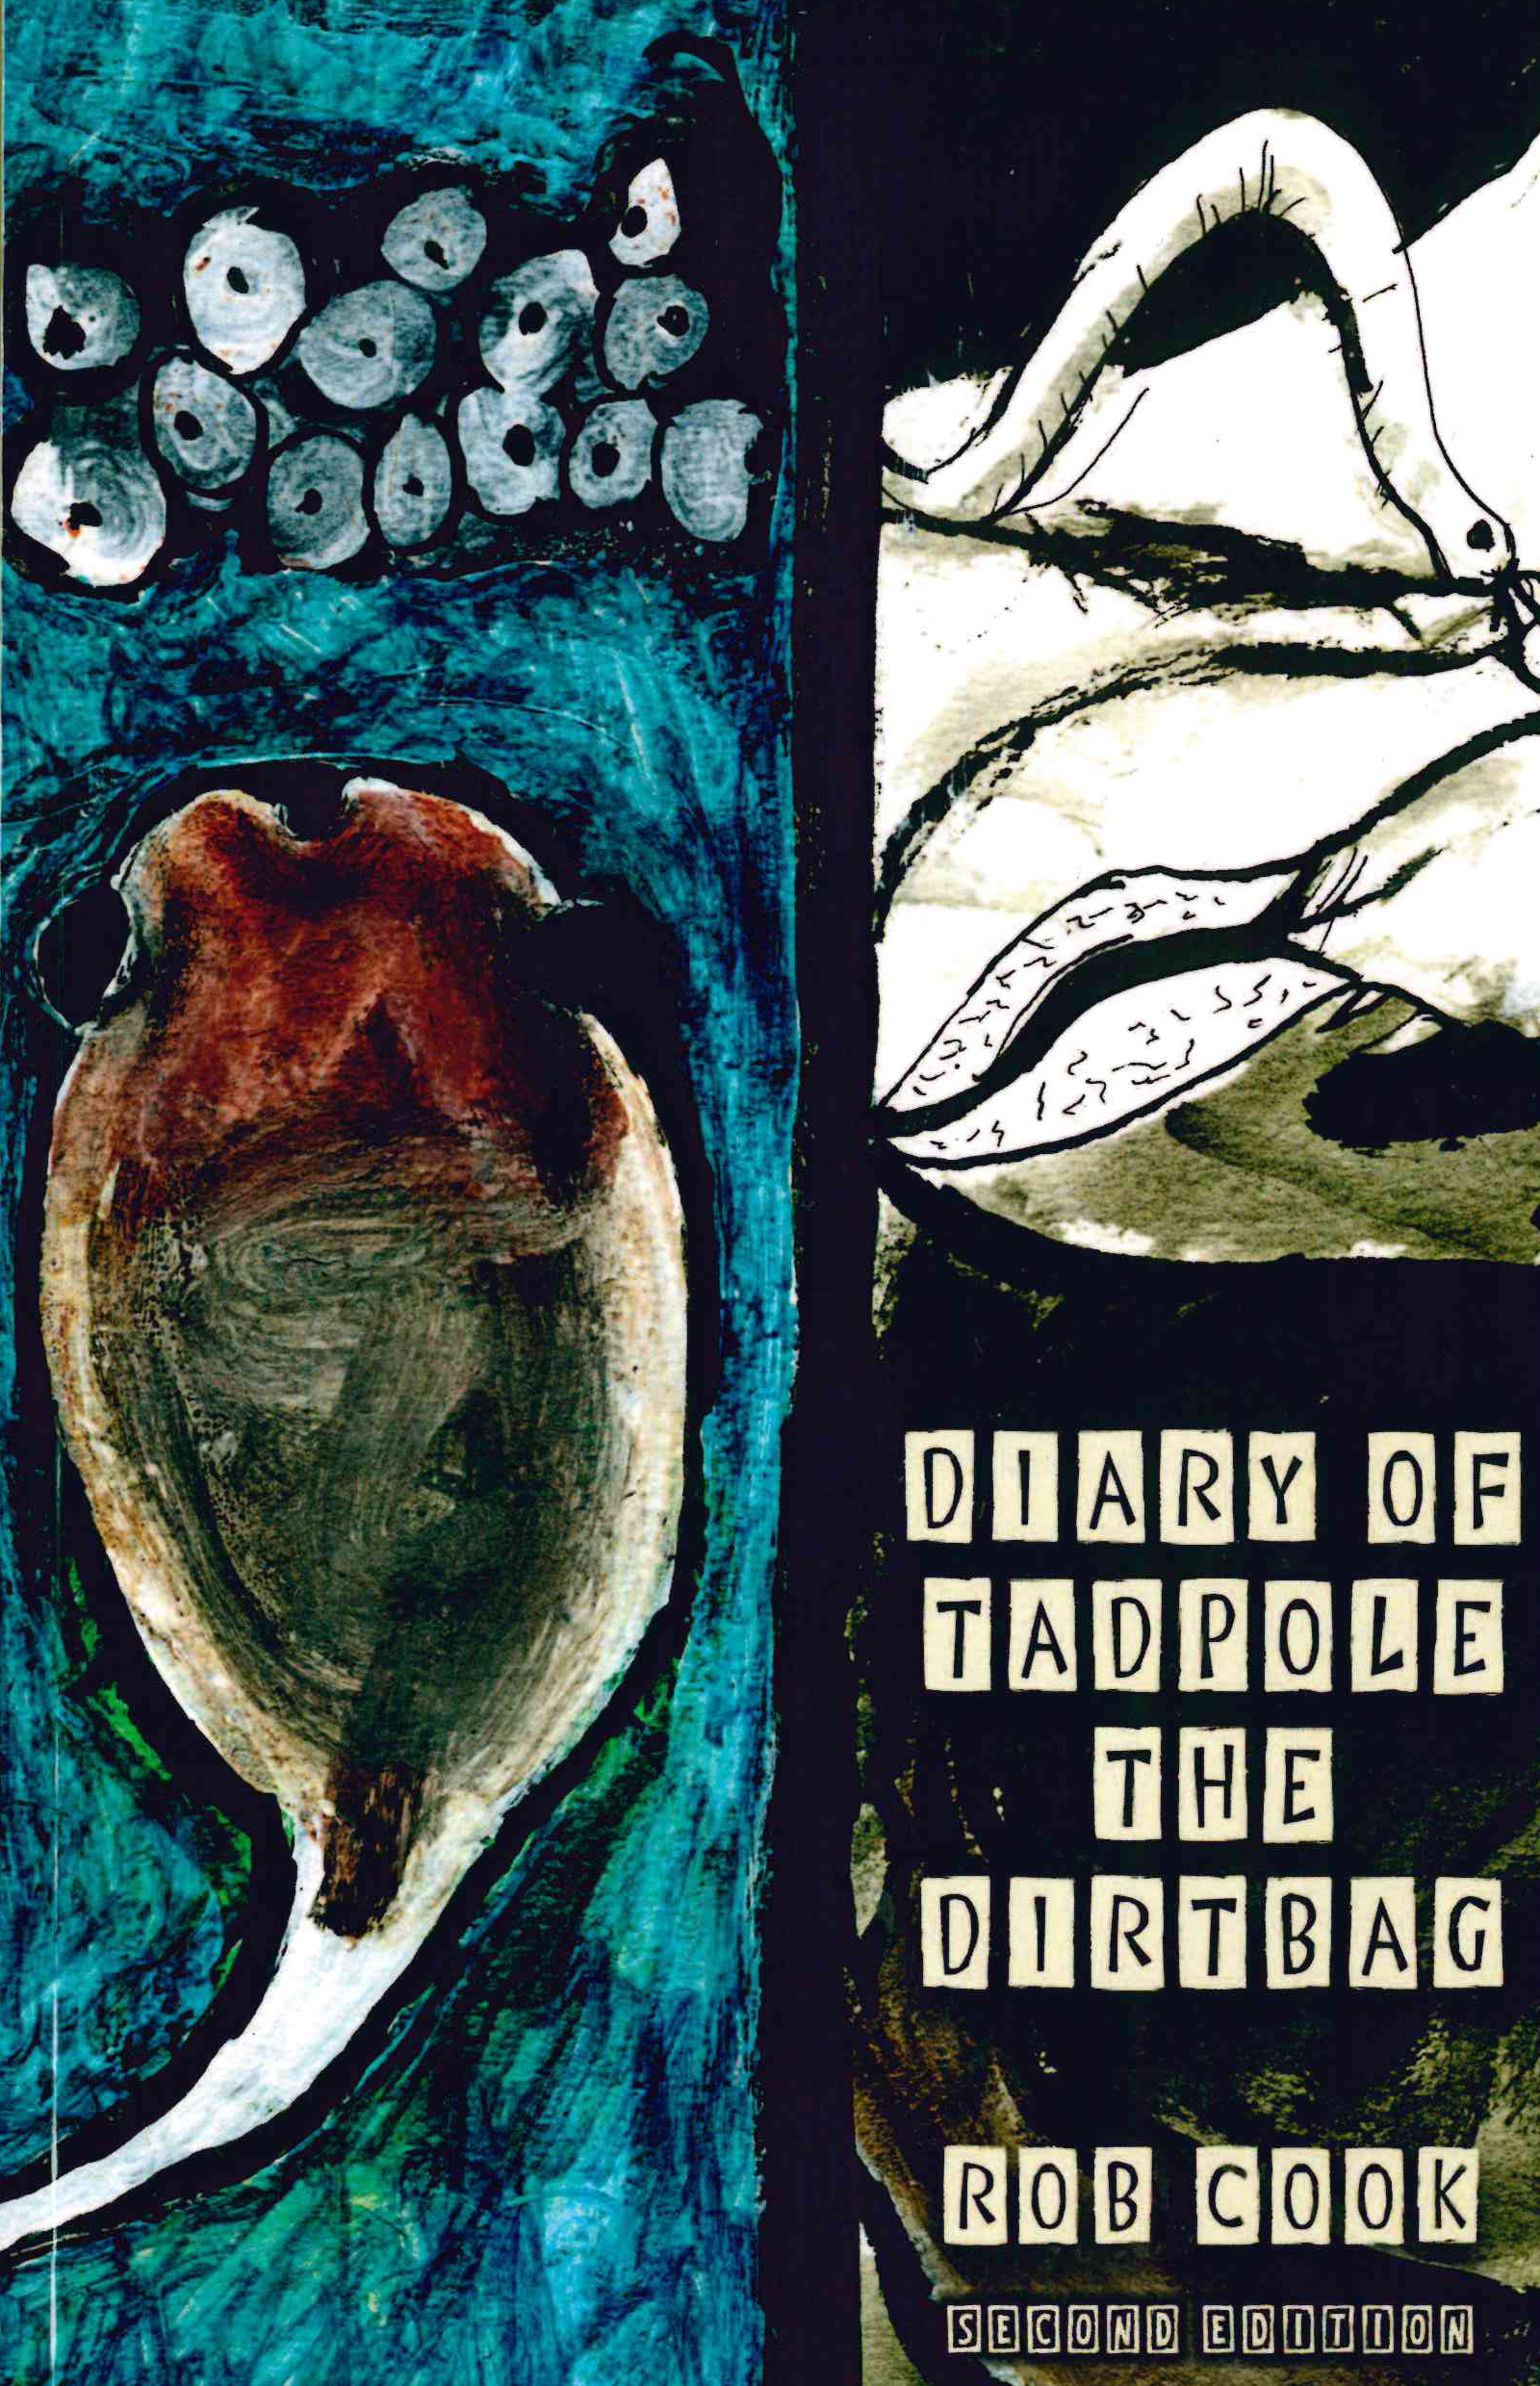 Diary of Tadpole the Dirtbag, Second Edition